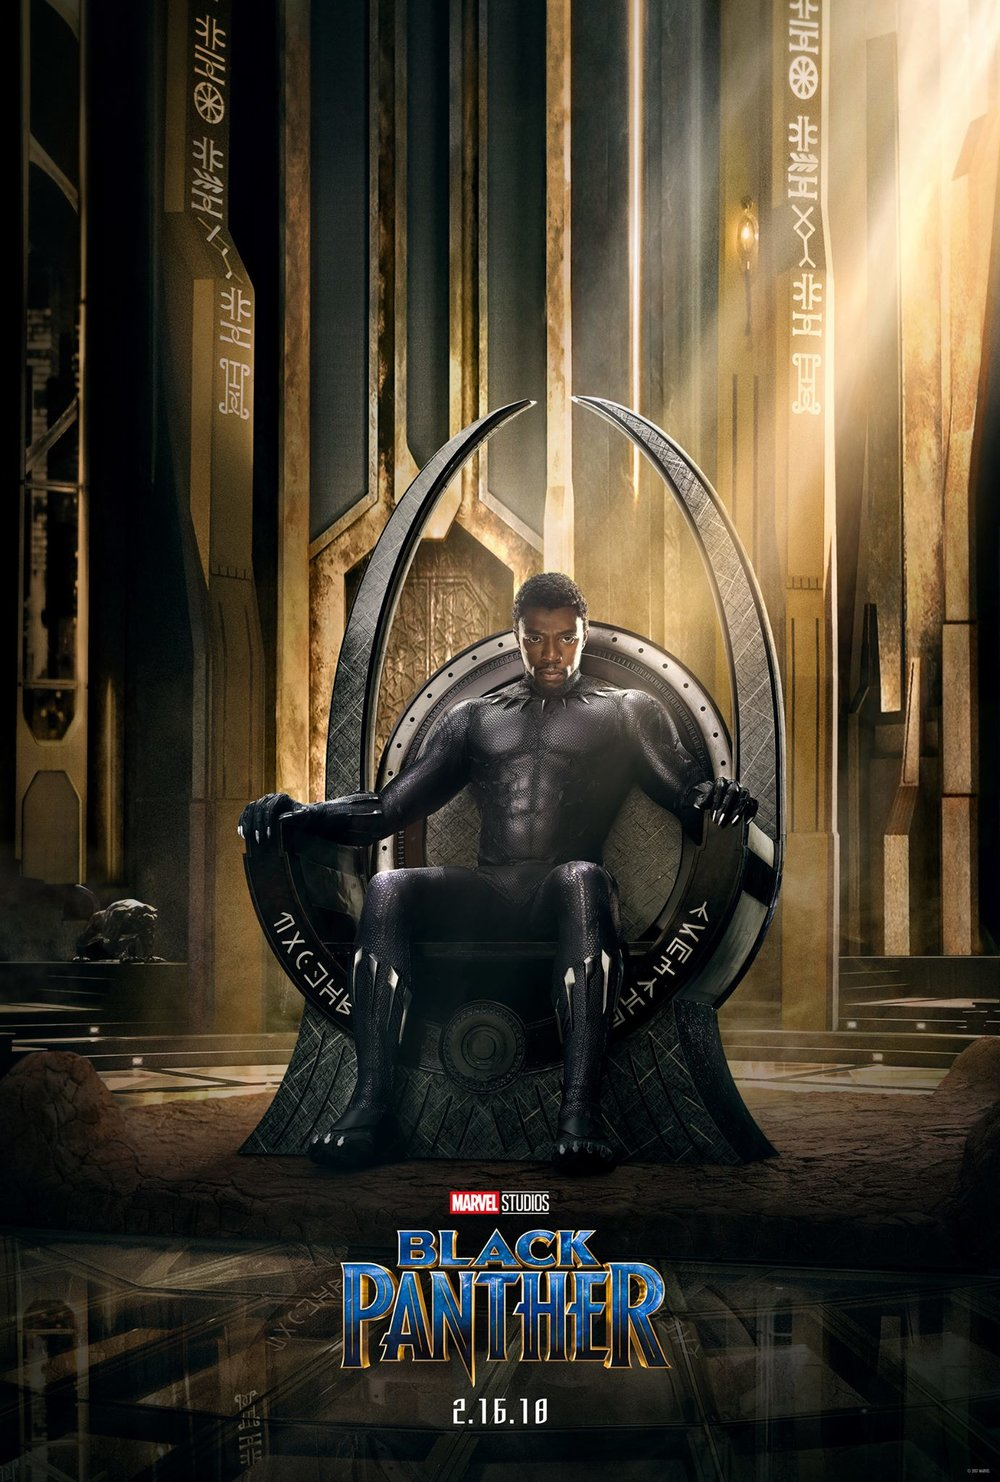 The 'Black Panther' teaser poster that looks similar to a poster of Huey P. Newton of the Black Panther Party.